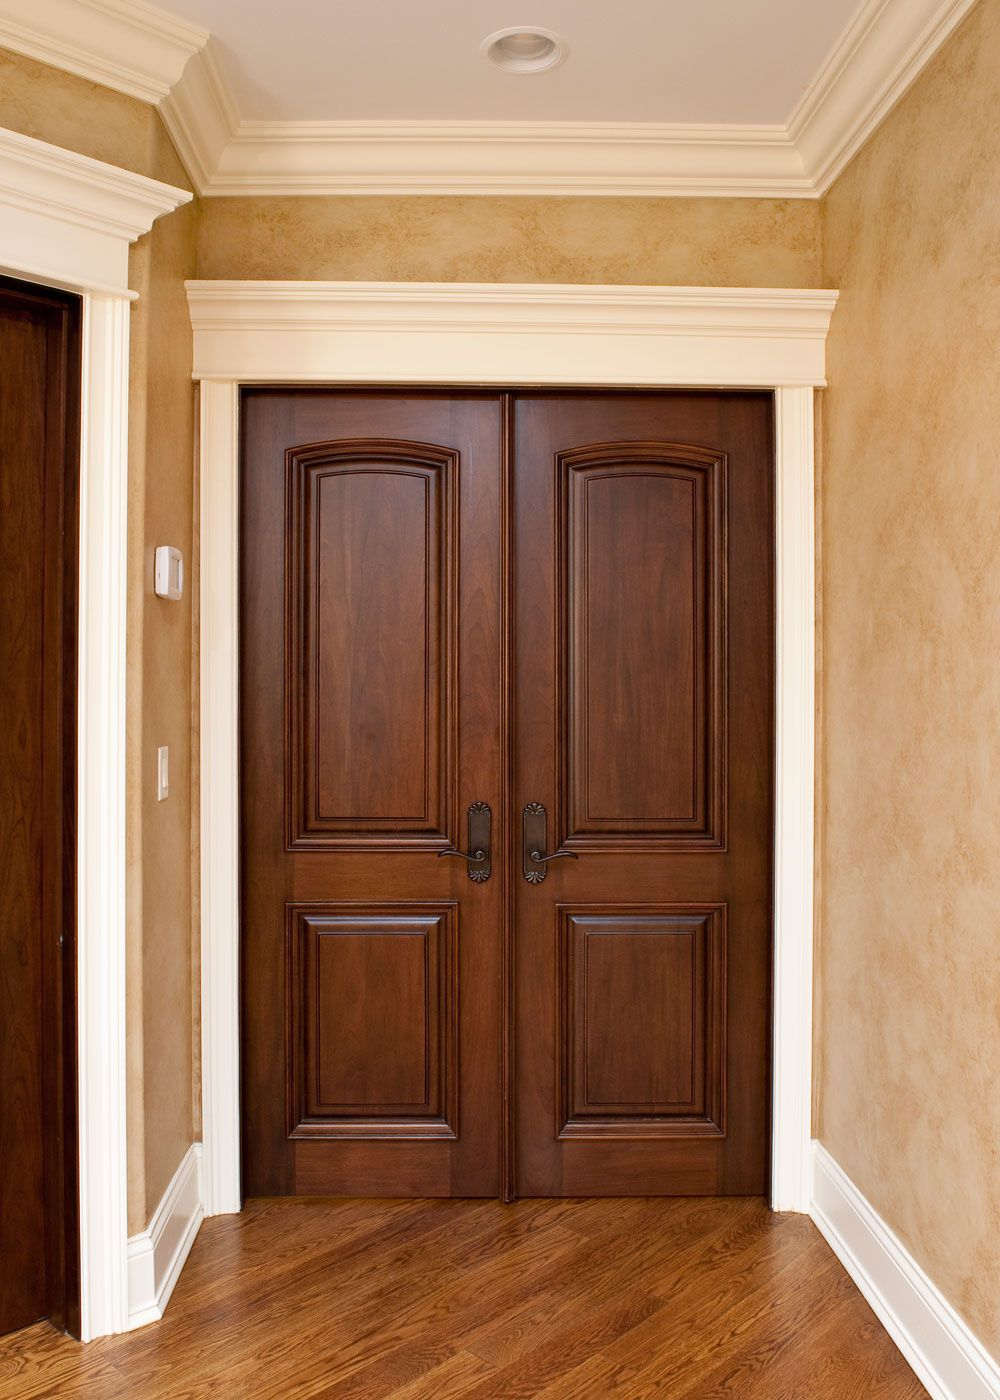 Interior Door Custom Double Solid Wood With Walnut Finish Classic Model Dbi 701 Dd Solid Wood Interior Door Interior Exterior Doors Wood Doors Interior